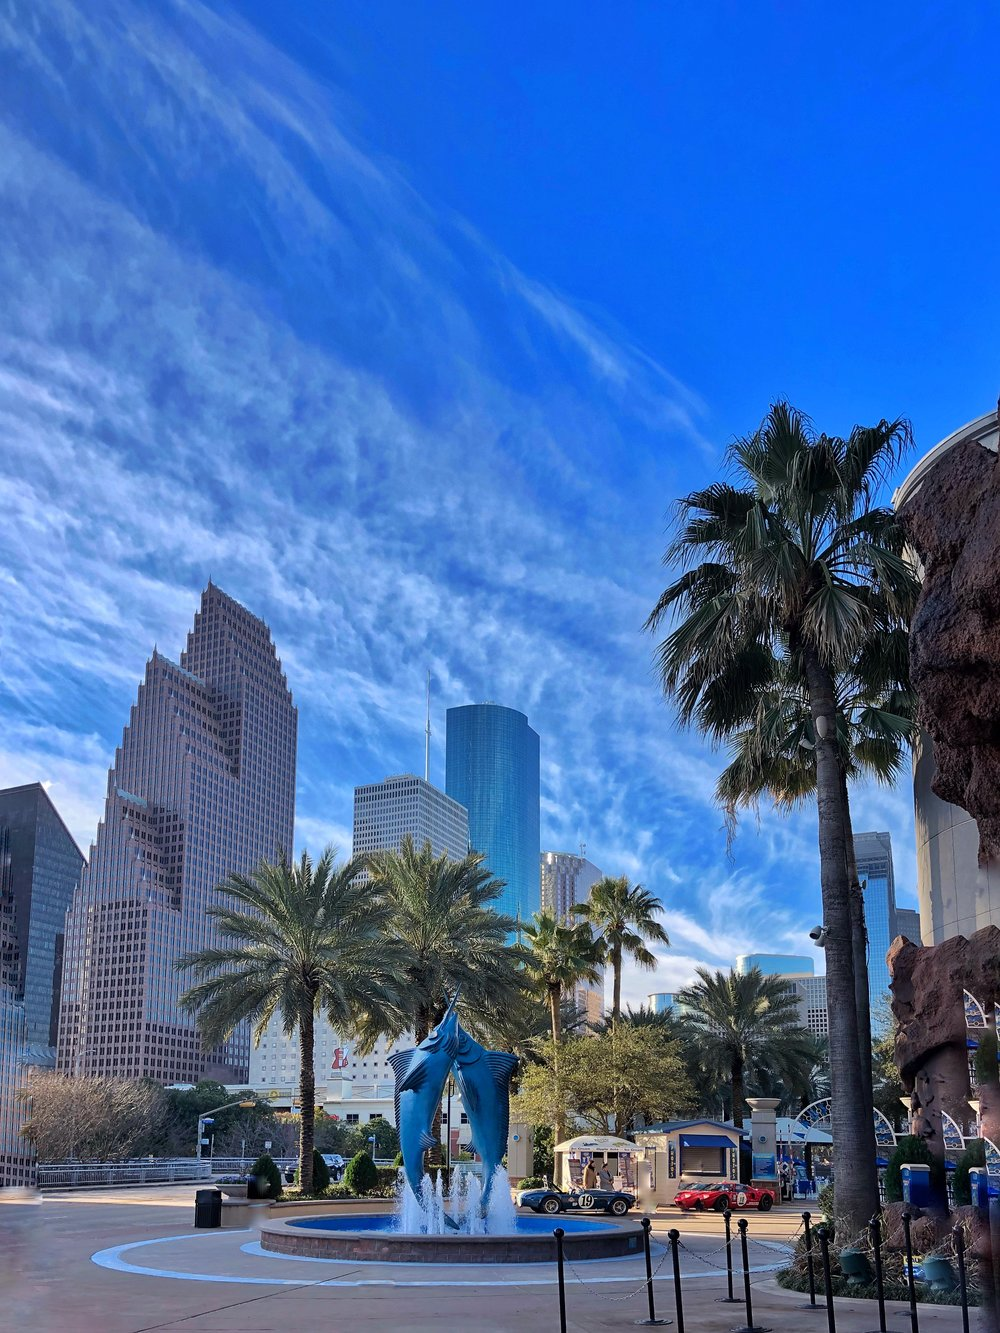 View from The Downtown Aquarium